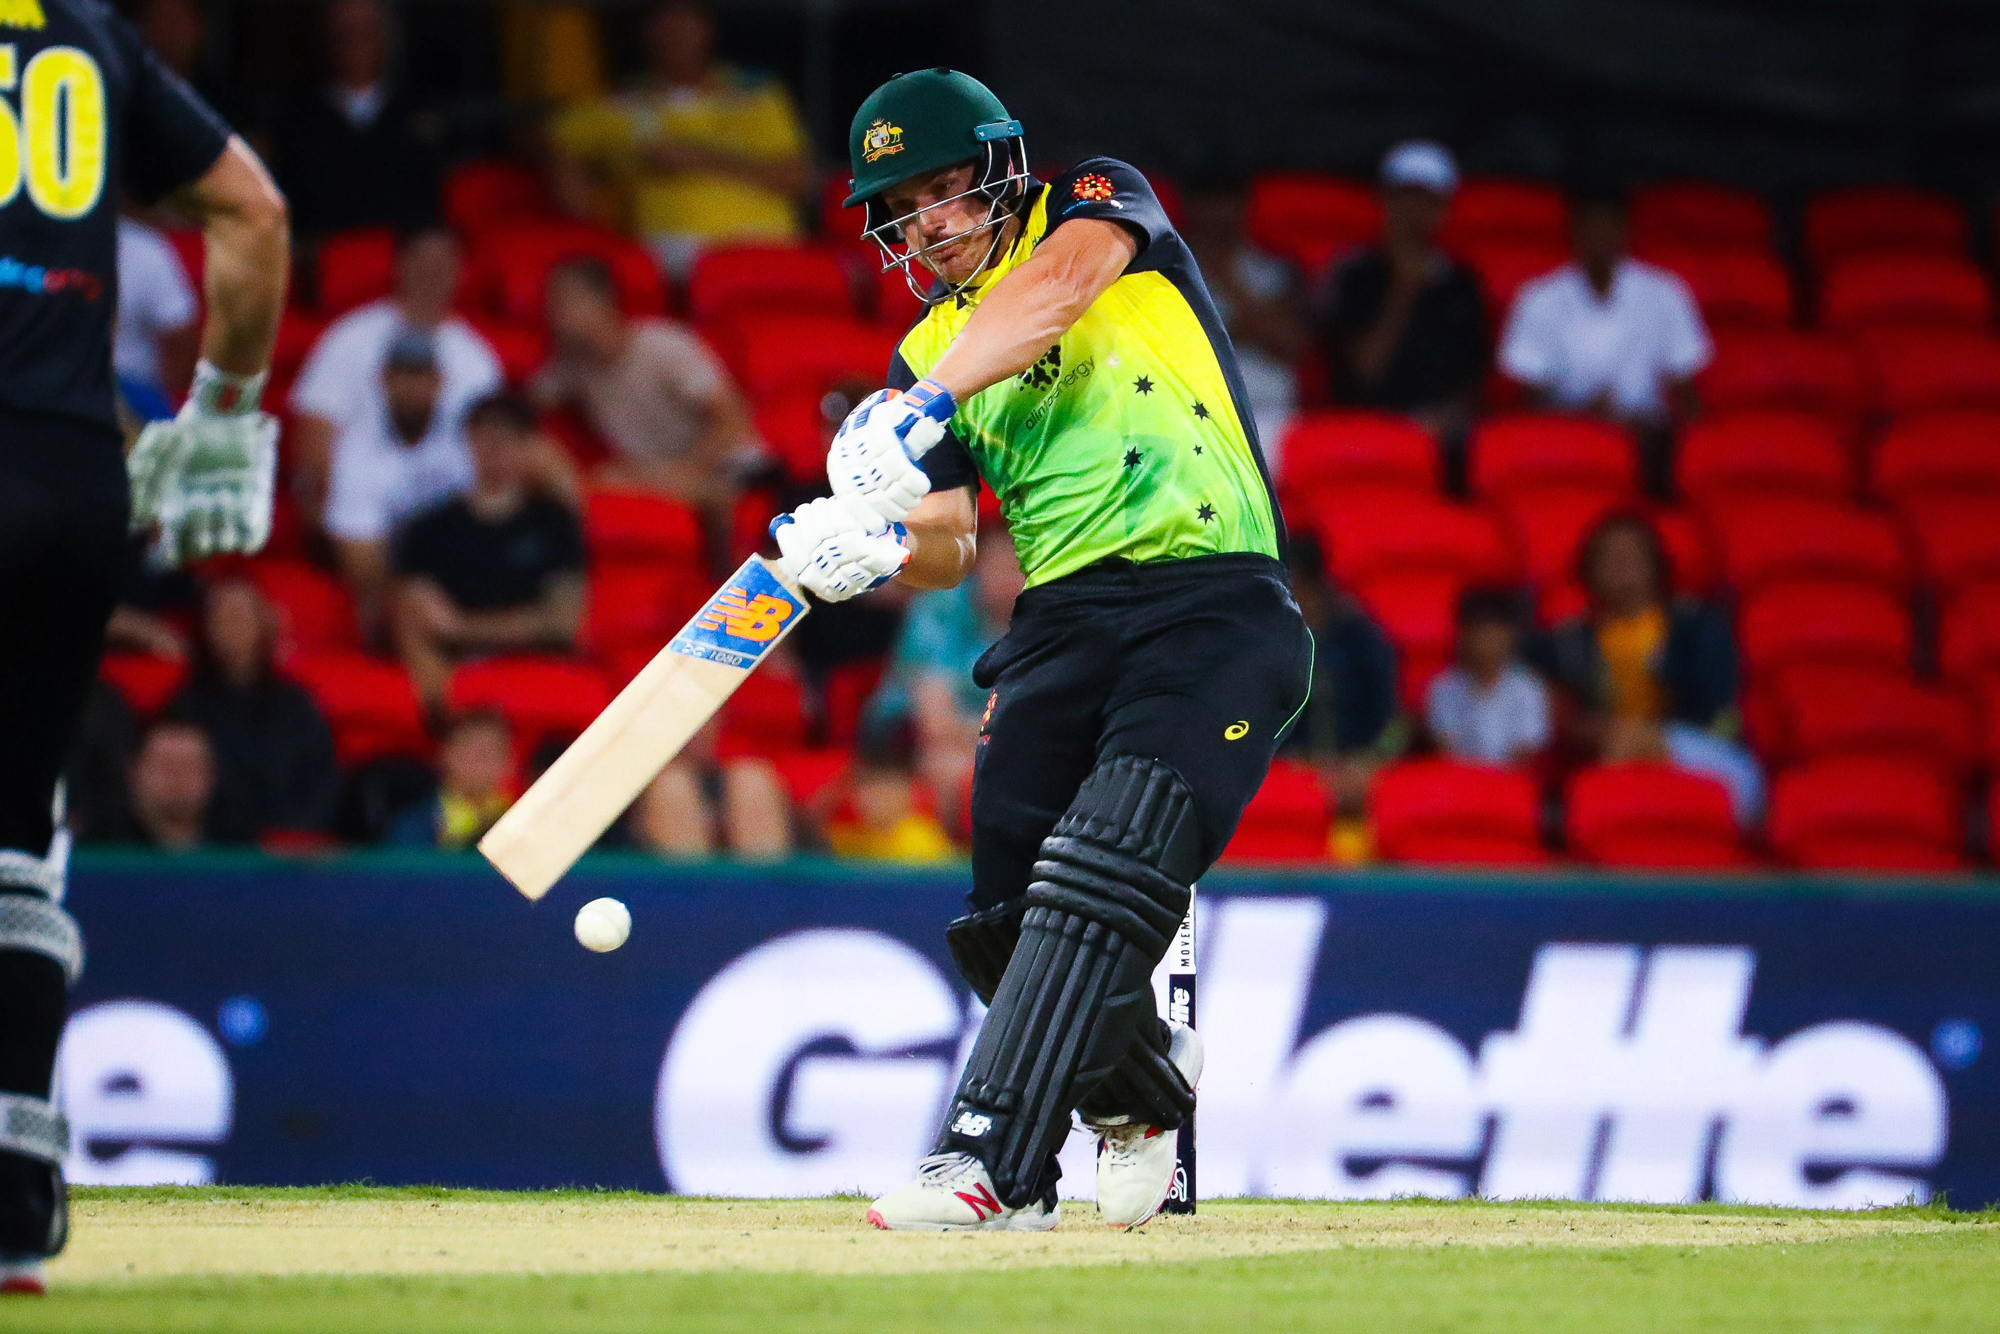 Aaron Finch of Australia plays a shot during the T20 international cricket match between Australia and South Africa at Metricon Stadium on the Gold Coast on November 17, 2018. (Photo by Patrick HAMILTON / AFP) / -- IMAGE RESTRICTED TO EDITORIAL USE - STRI